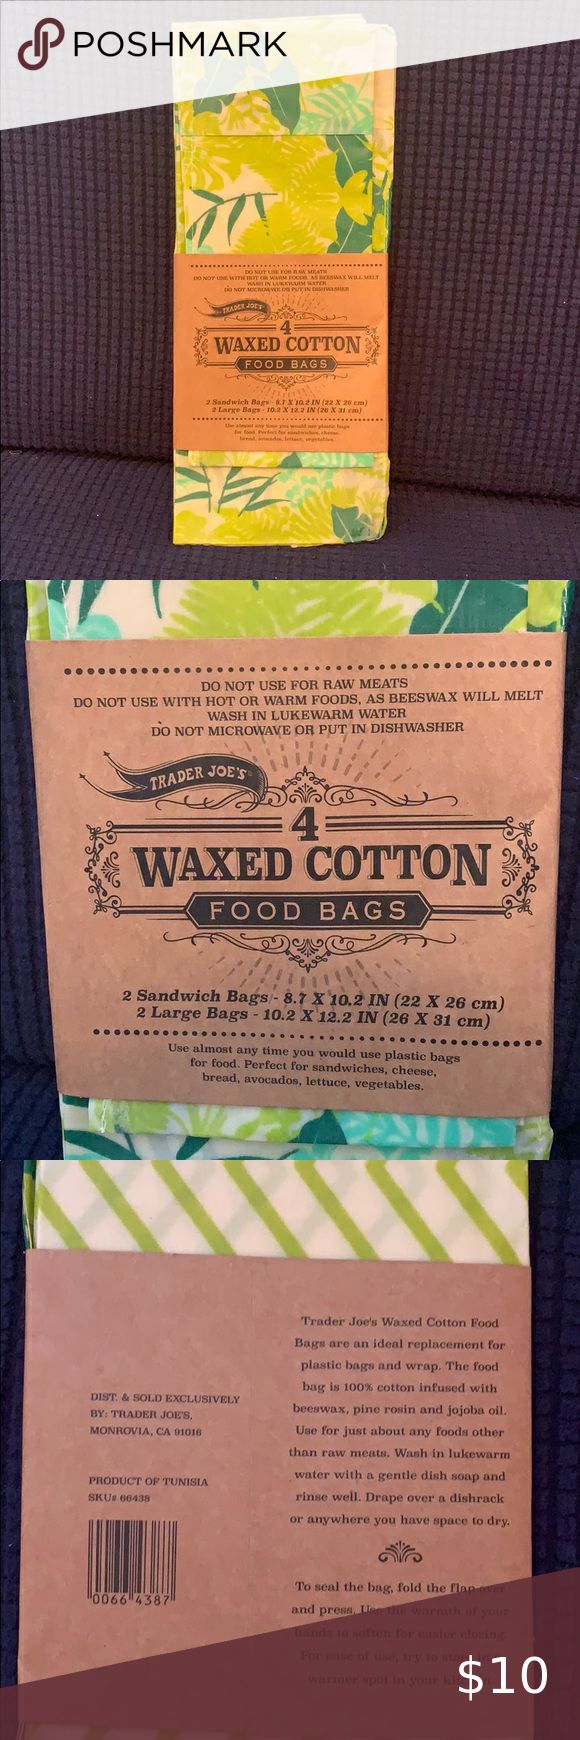 Trader Joe's 4 waxed cotton food bags set of 4 in 2020